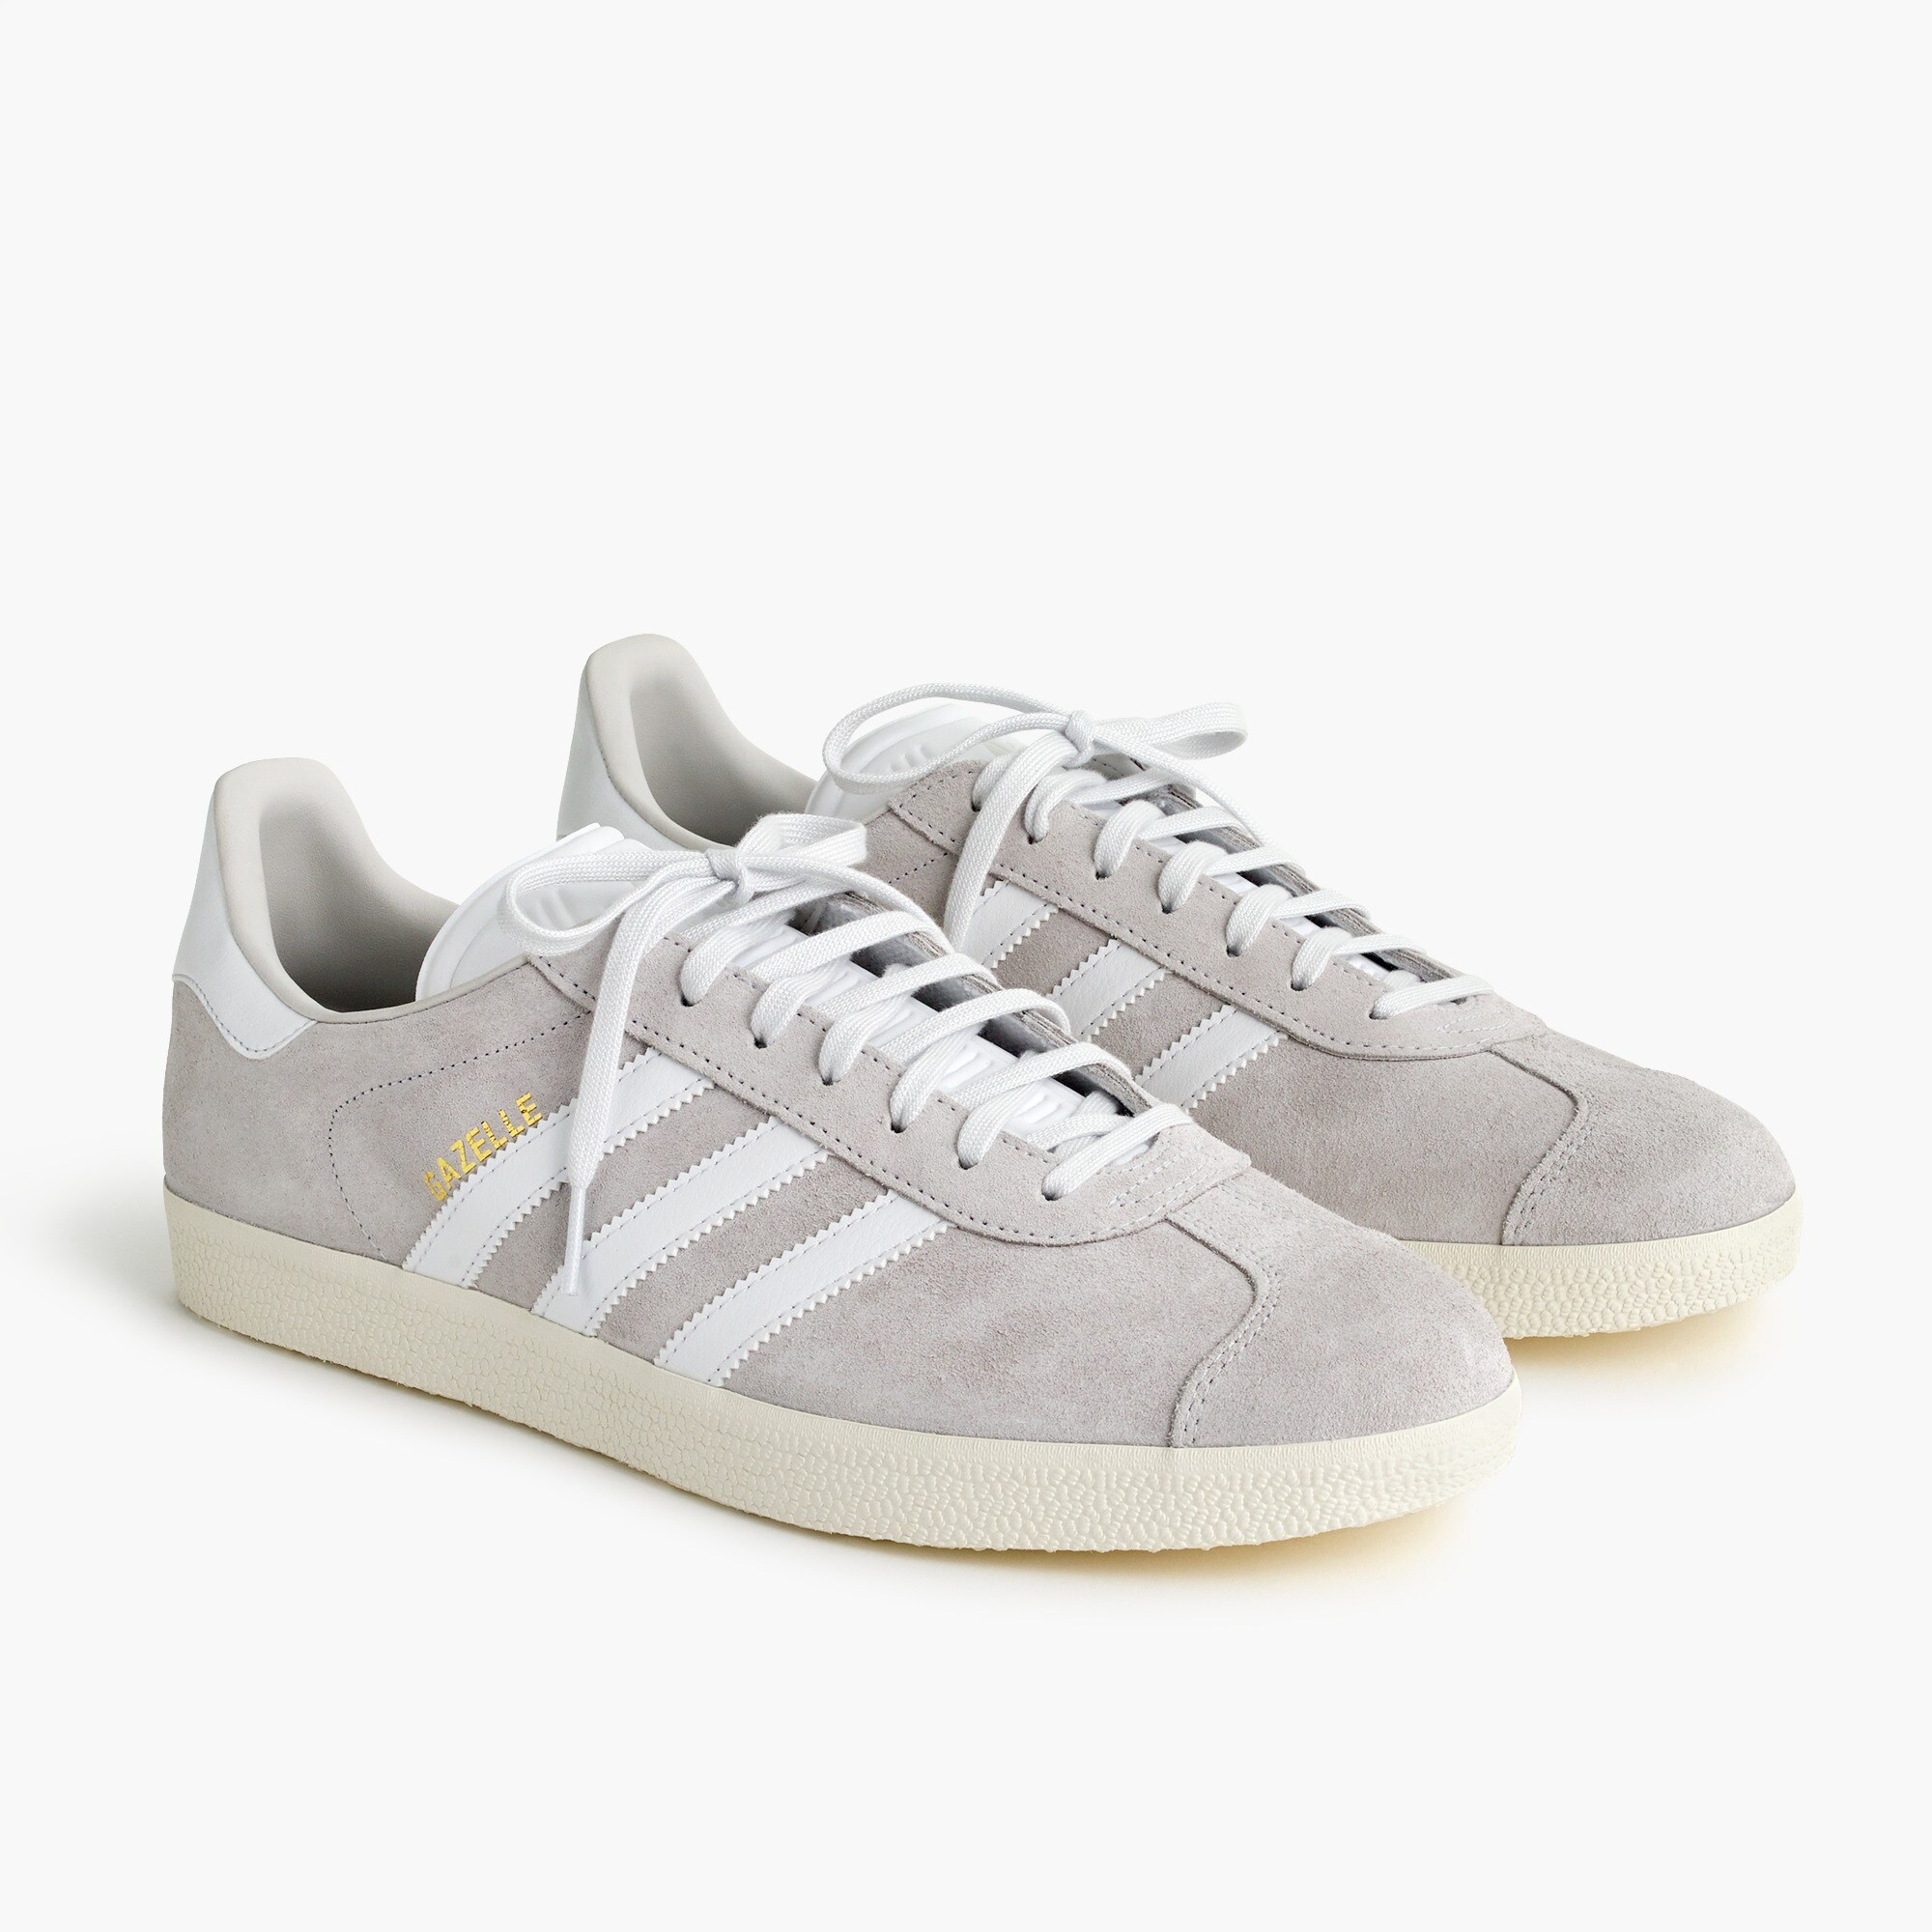 mens Adidas® Gazelle® sneakers